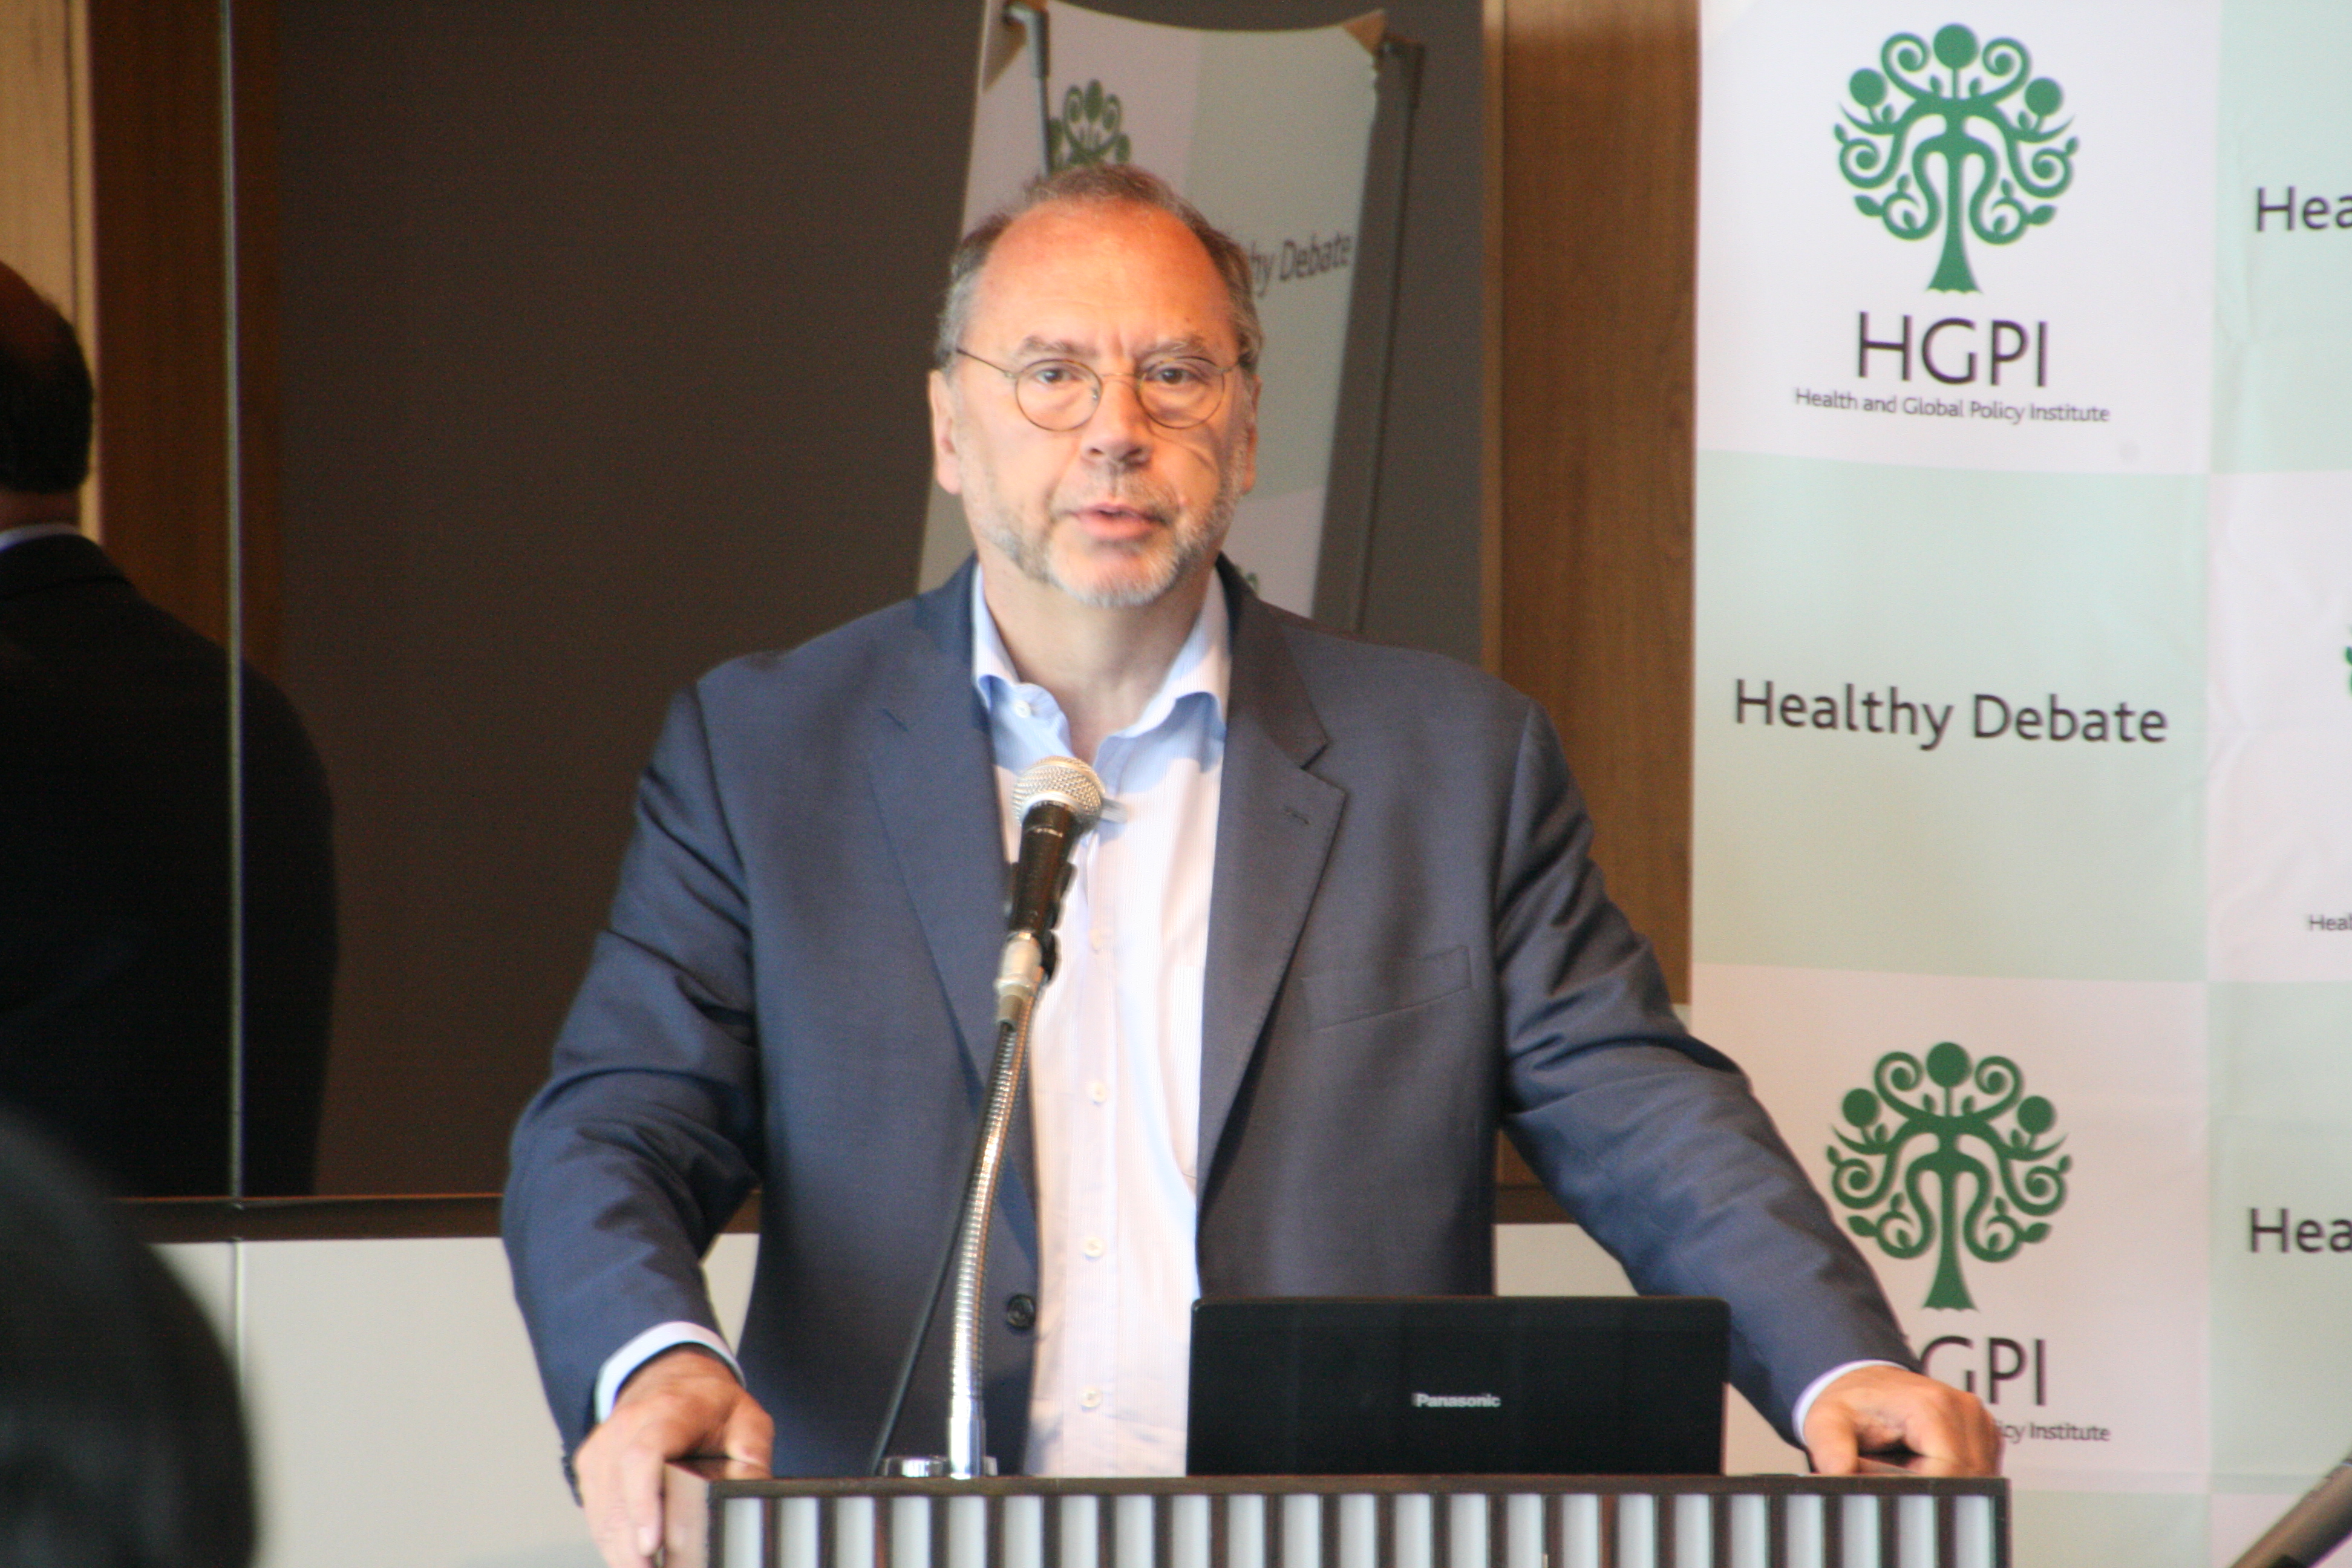 (Event Report) 29th Special Breakfast Meeting featuring Dr. Peter Piot on Local Responses to Global Health Issues